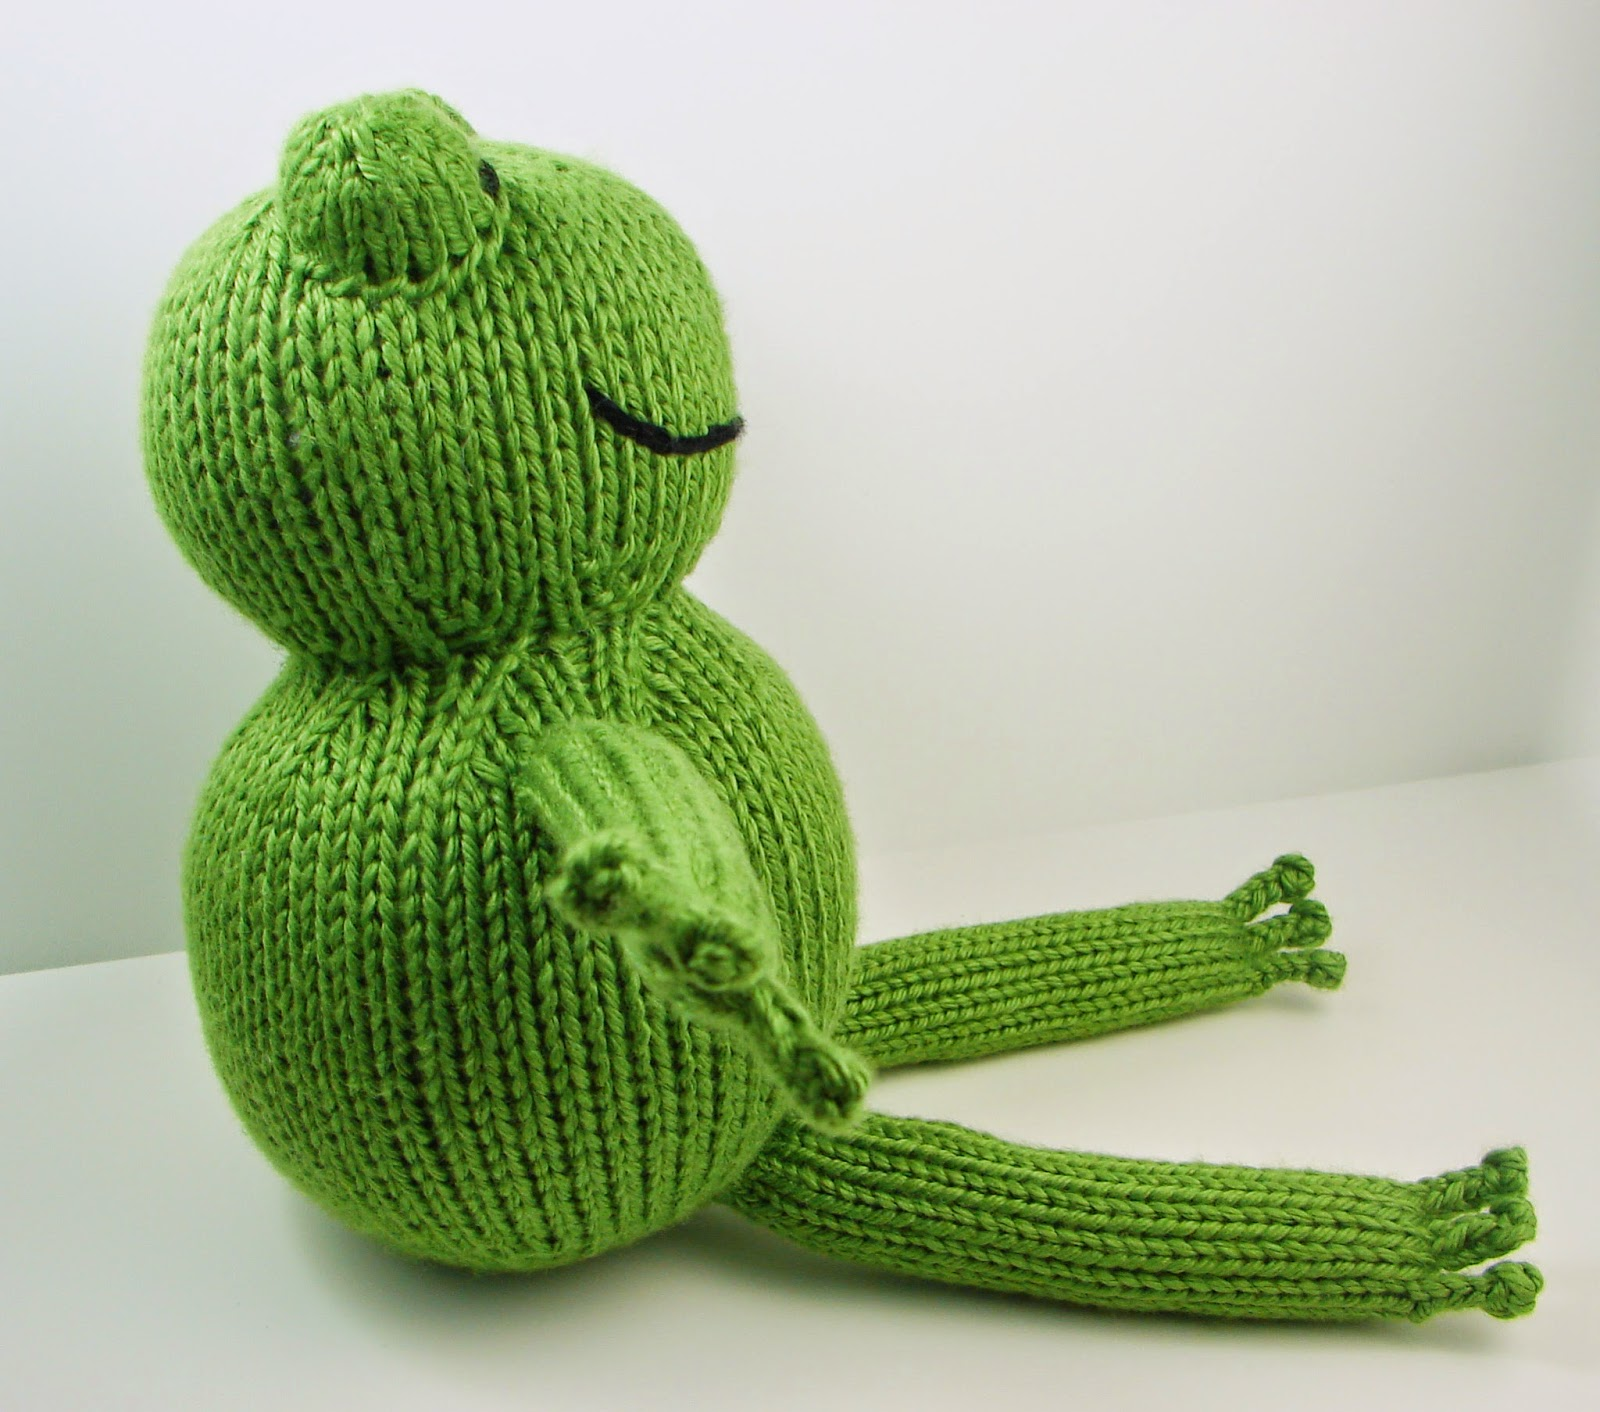 frog, froggy, toad, knit, green, pattern, free, toy, knit picks